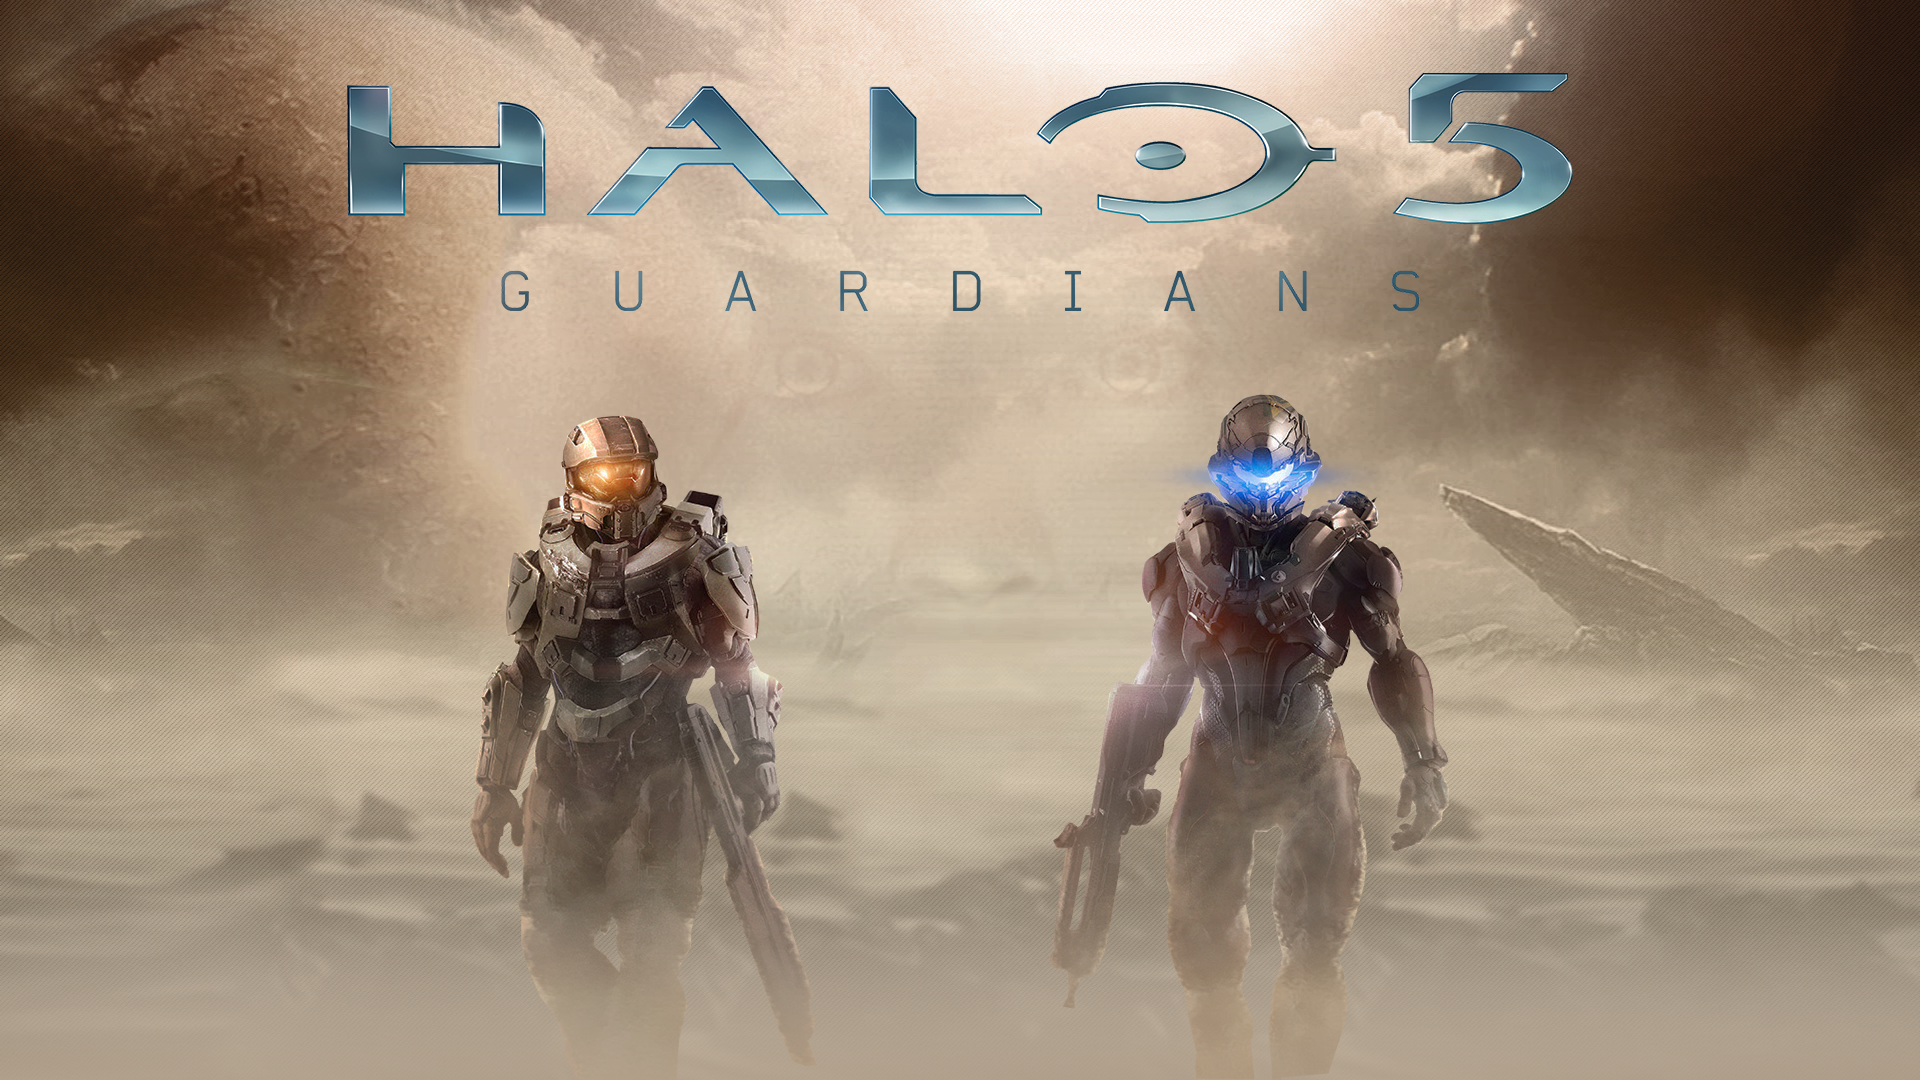 Suposta data de lanamento de Halo 5 Guardians mostrada no 1920x1080